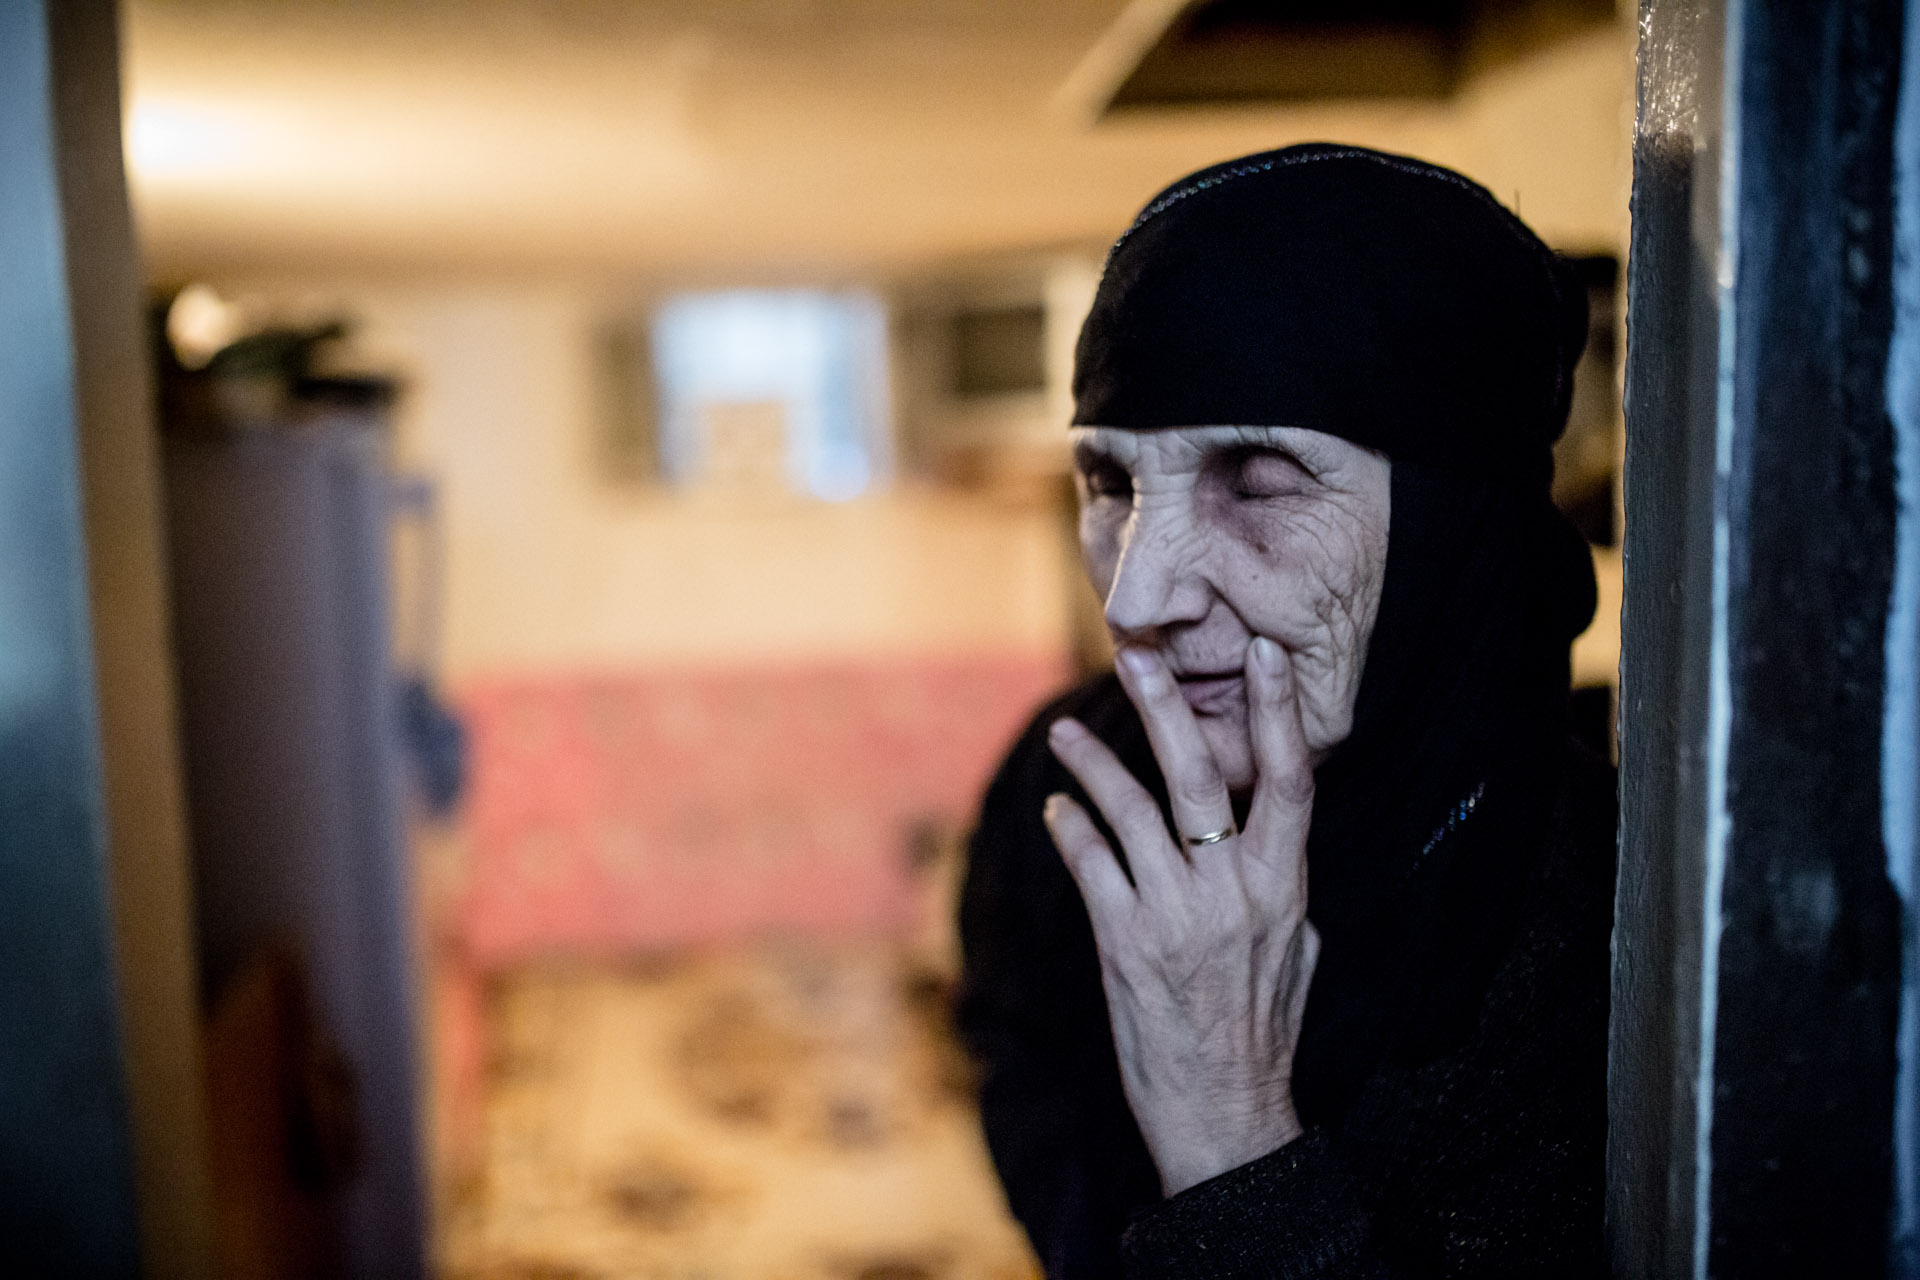 Mehdian was born in Palestine and came to Lebanon with her parents in 1948, fleeing the Arab-Israeli war. She never went to school and doesn't remember her age. She lives with her 40 year old daughter in a one bedroom basement.